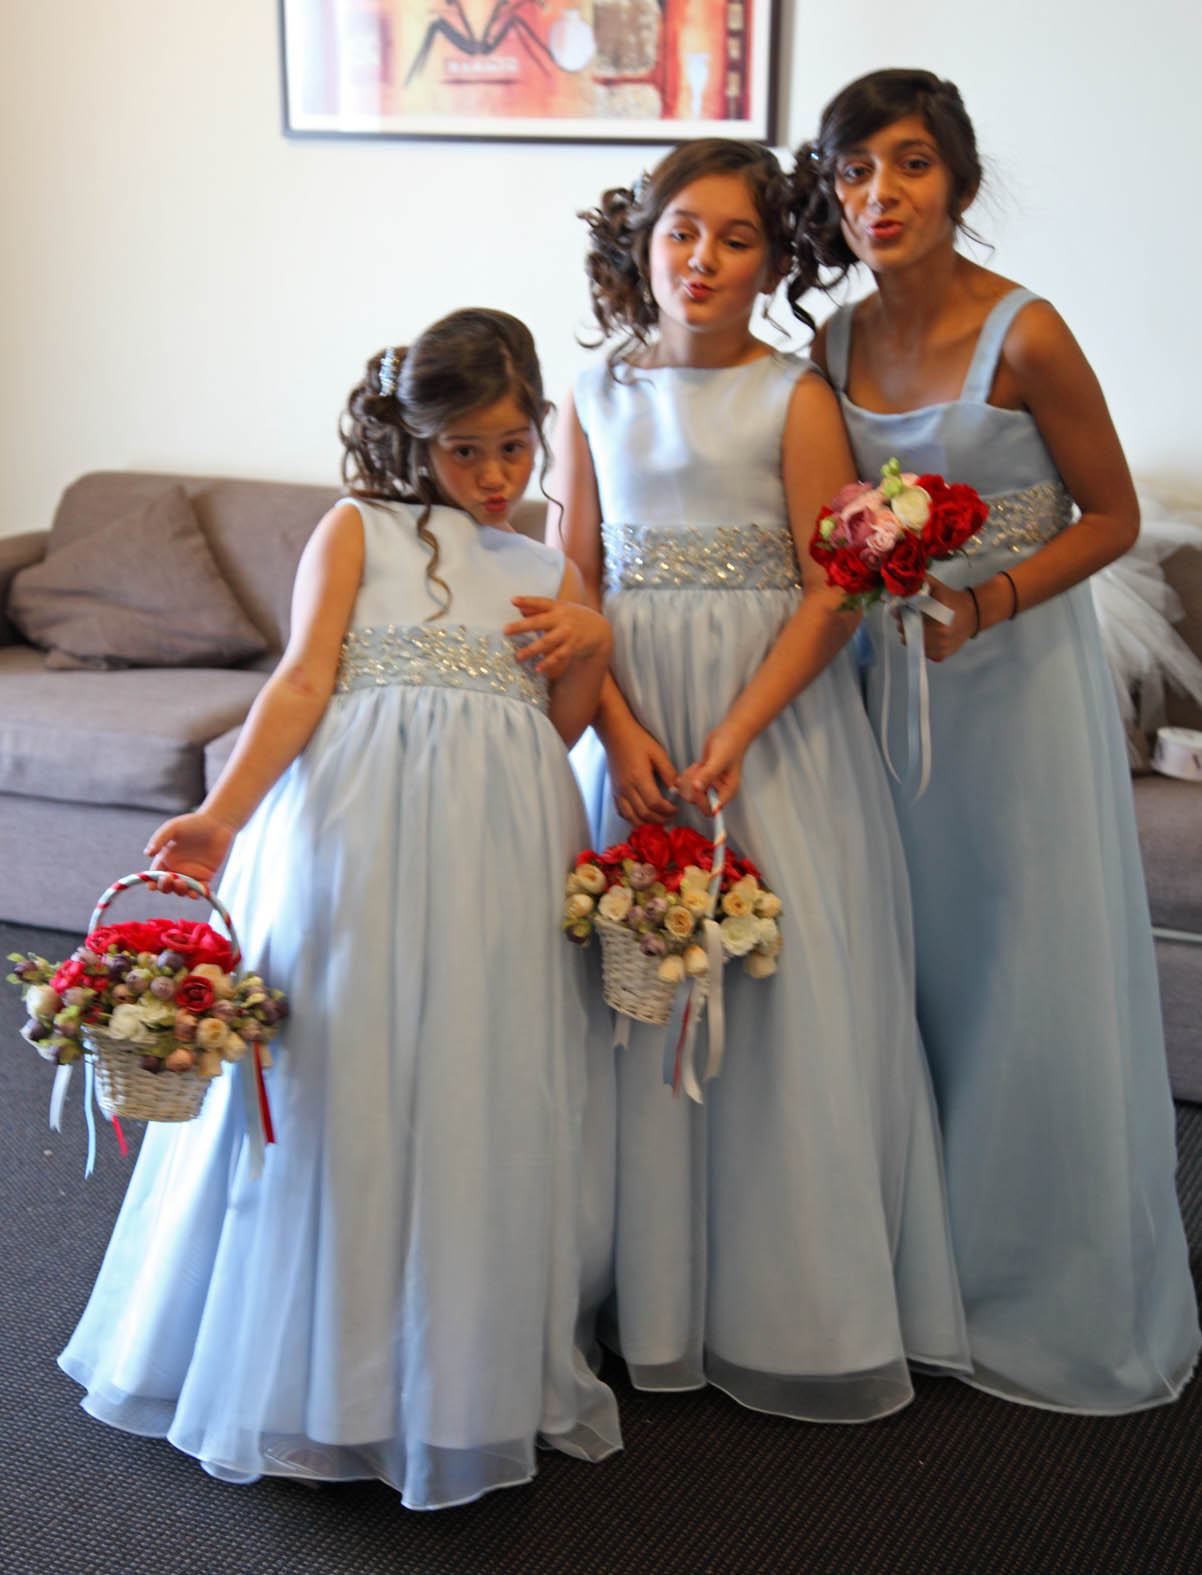 Jasmine bridal shop my daughters wedding pic heavy flower girl red dress with sign izmirmasajfo